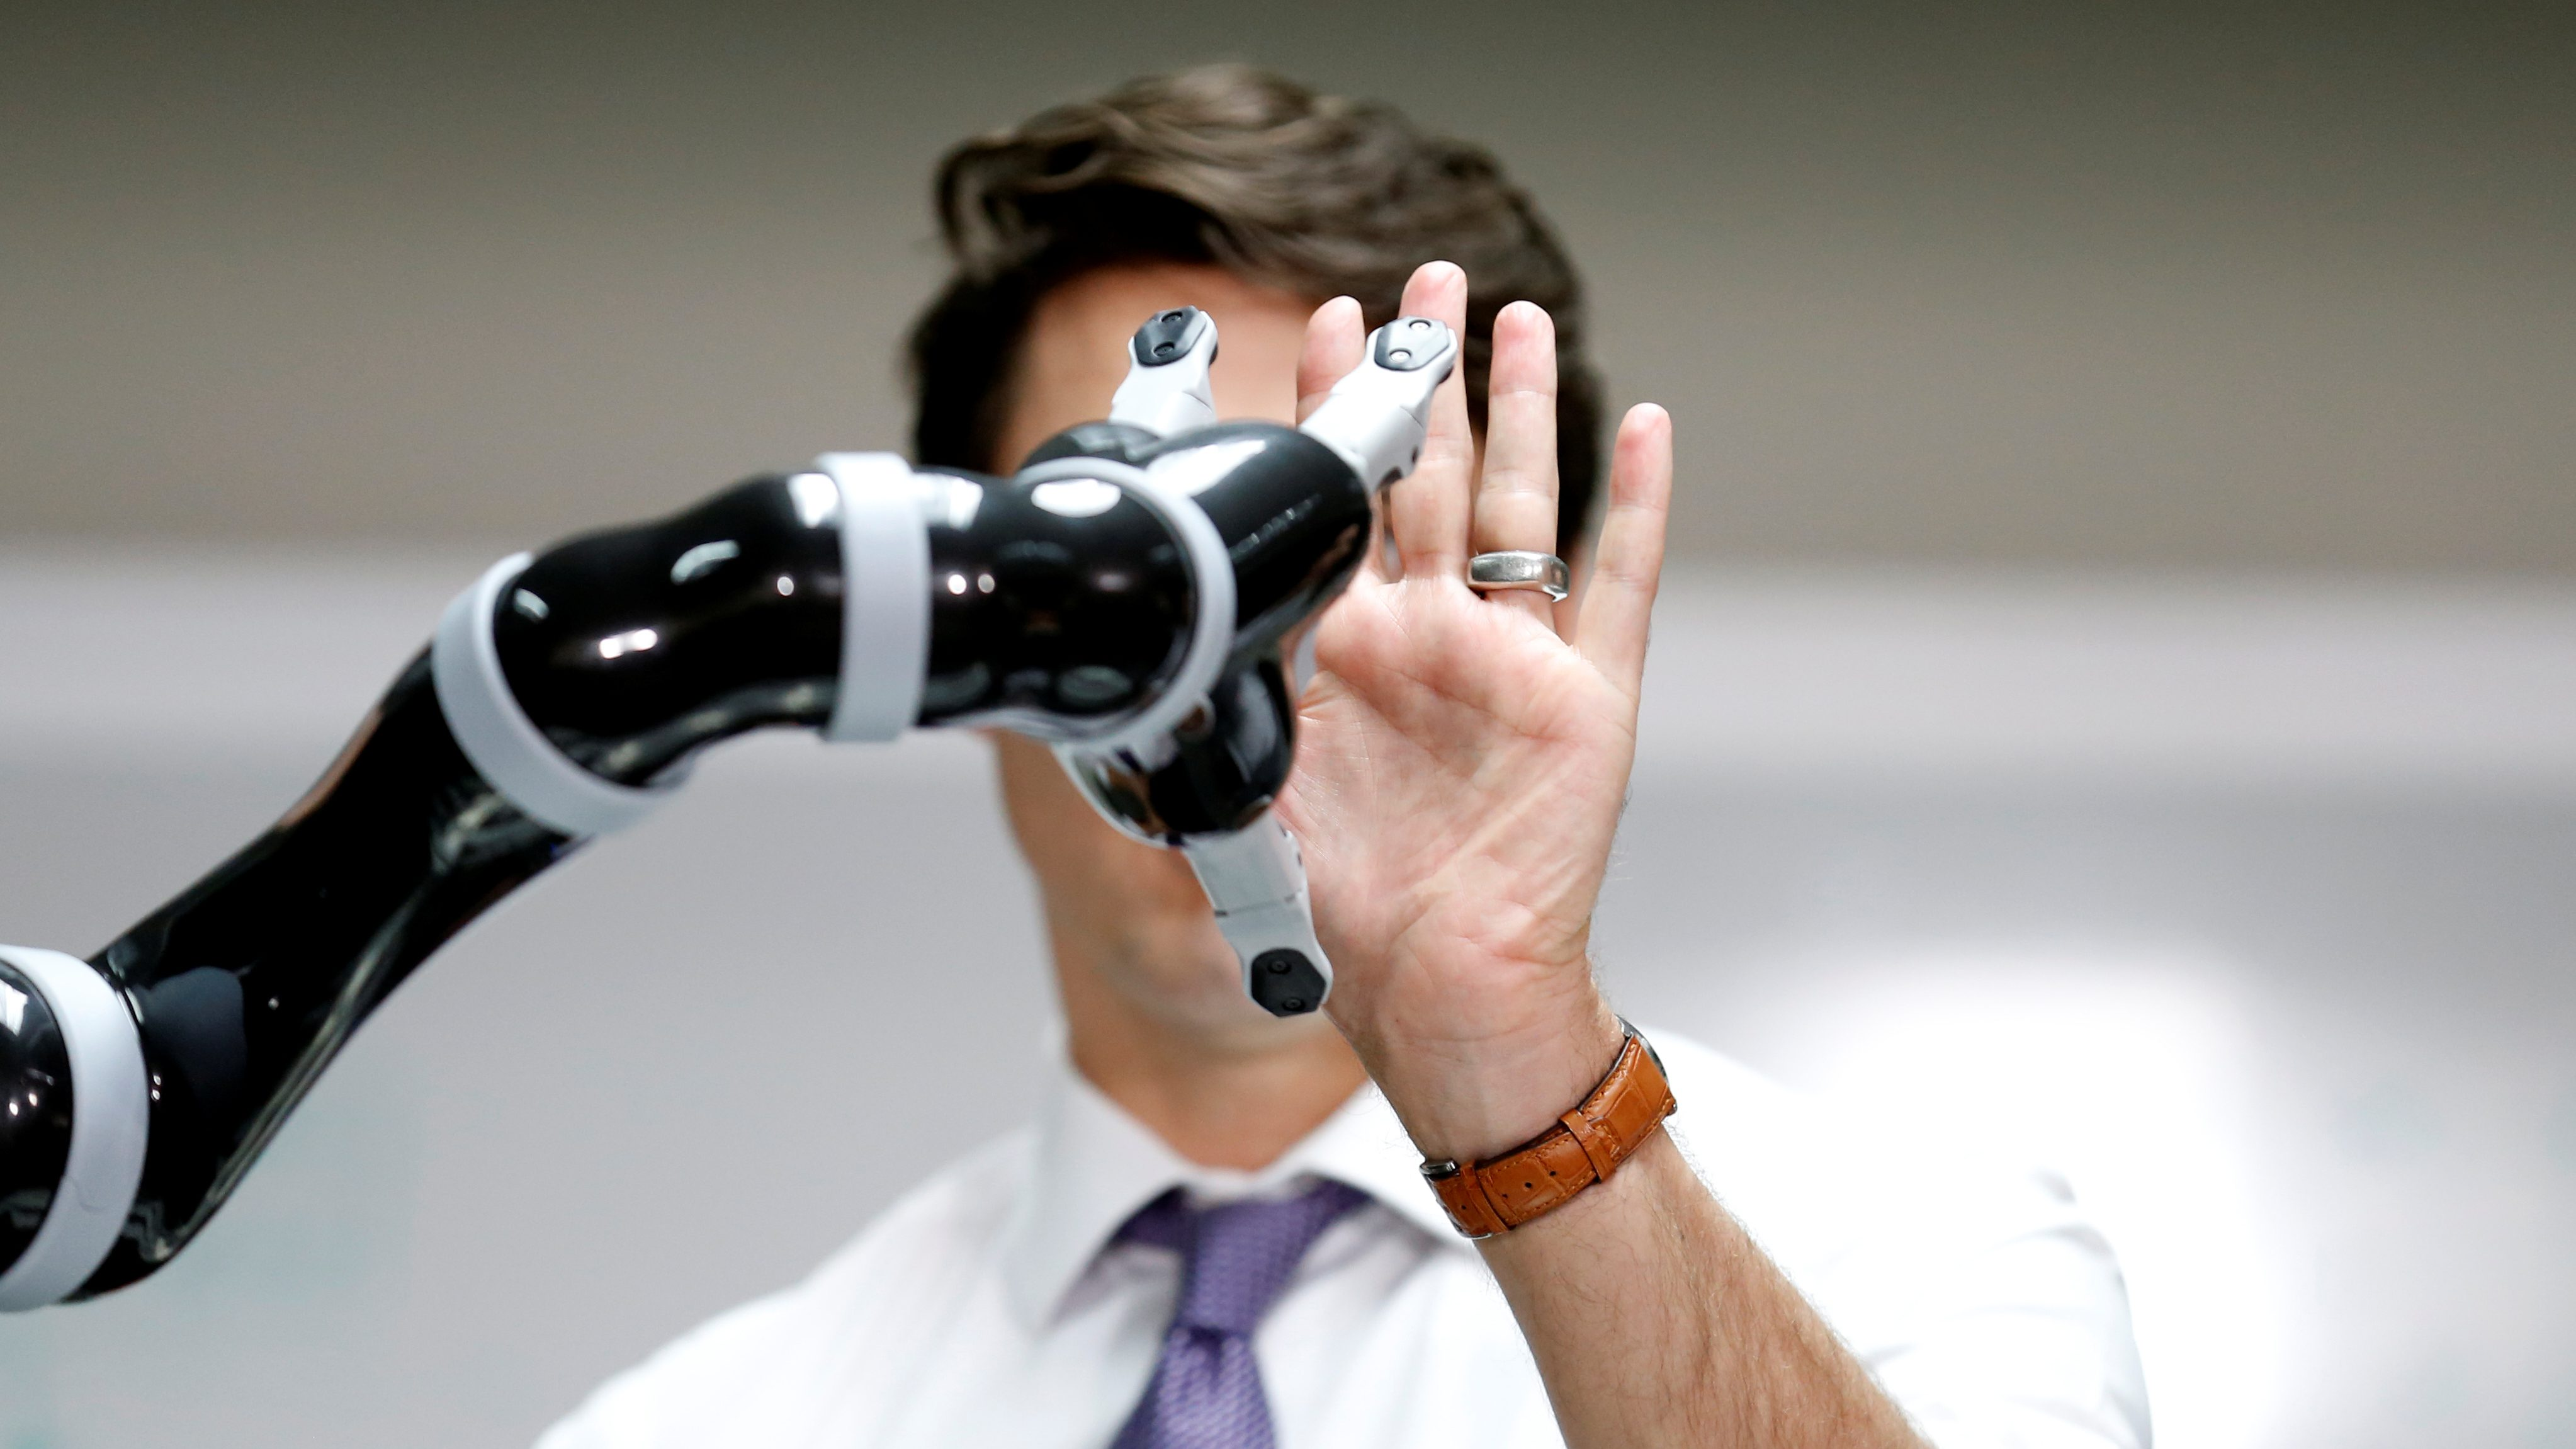 Canadian Prime Minister Justin Trudeau high fives a robotic arm as he takes part in a robotics demonstration at Kinova Robotics in Boisbriand, Quebec, Canada March 24, 2017.  REUTERS/Christinne Muschi     TPX IMAGES OF THE DAY - RTX32L58